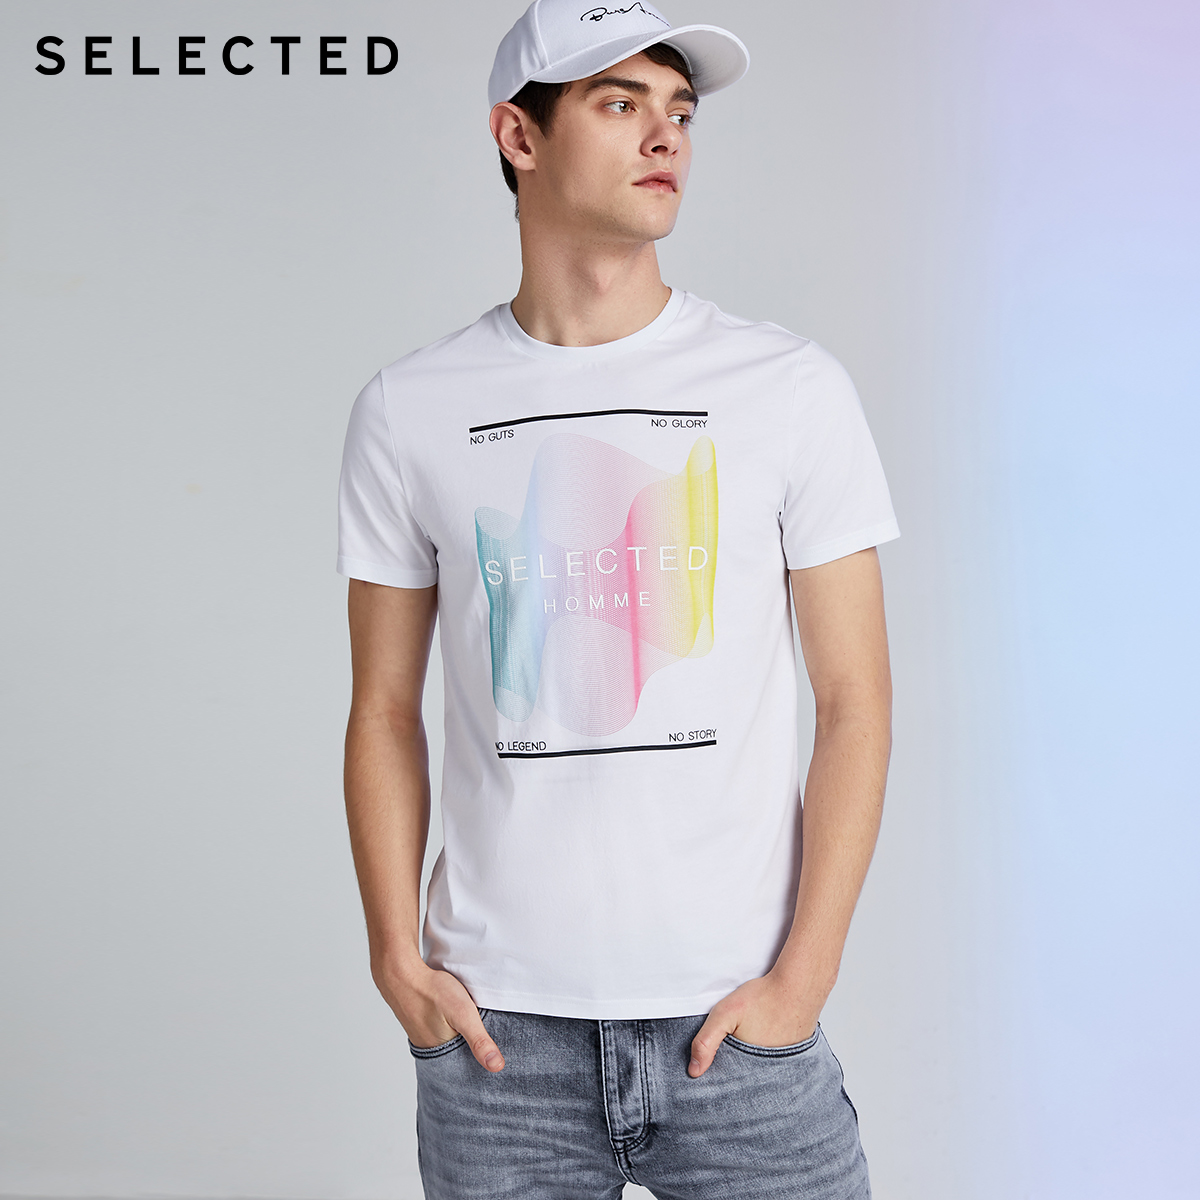 SELECTED Men's 100% Cotton Letter Print Short-sleeved T-shirt S|420201515